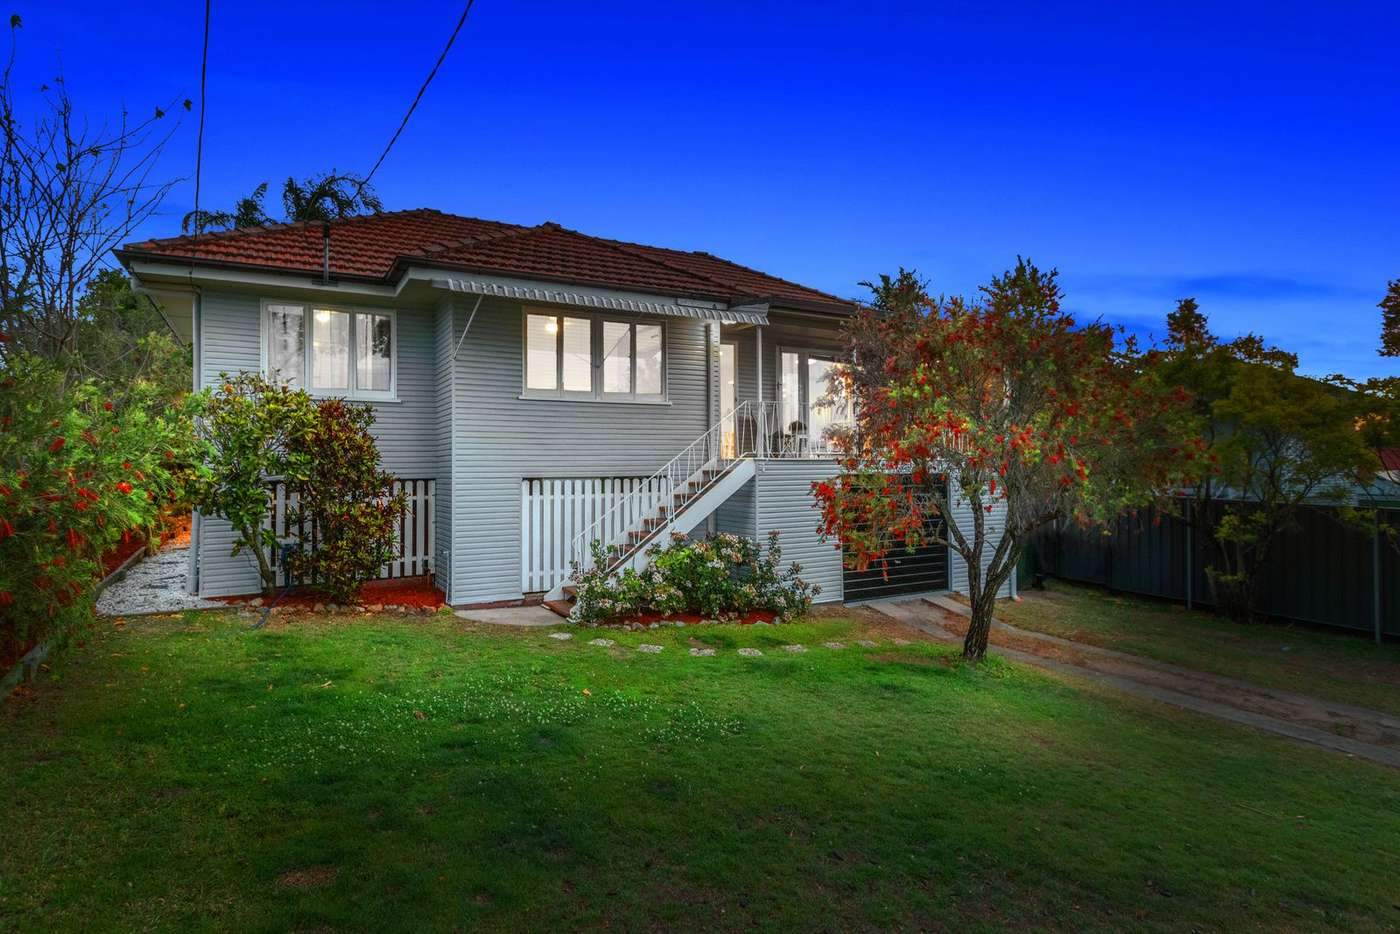 Main view of Homely house listing, 67 Highgate Street, Coopers Plains QLD 4108